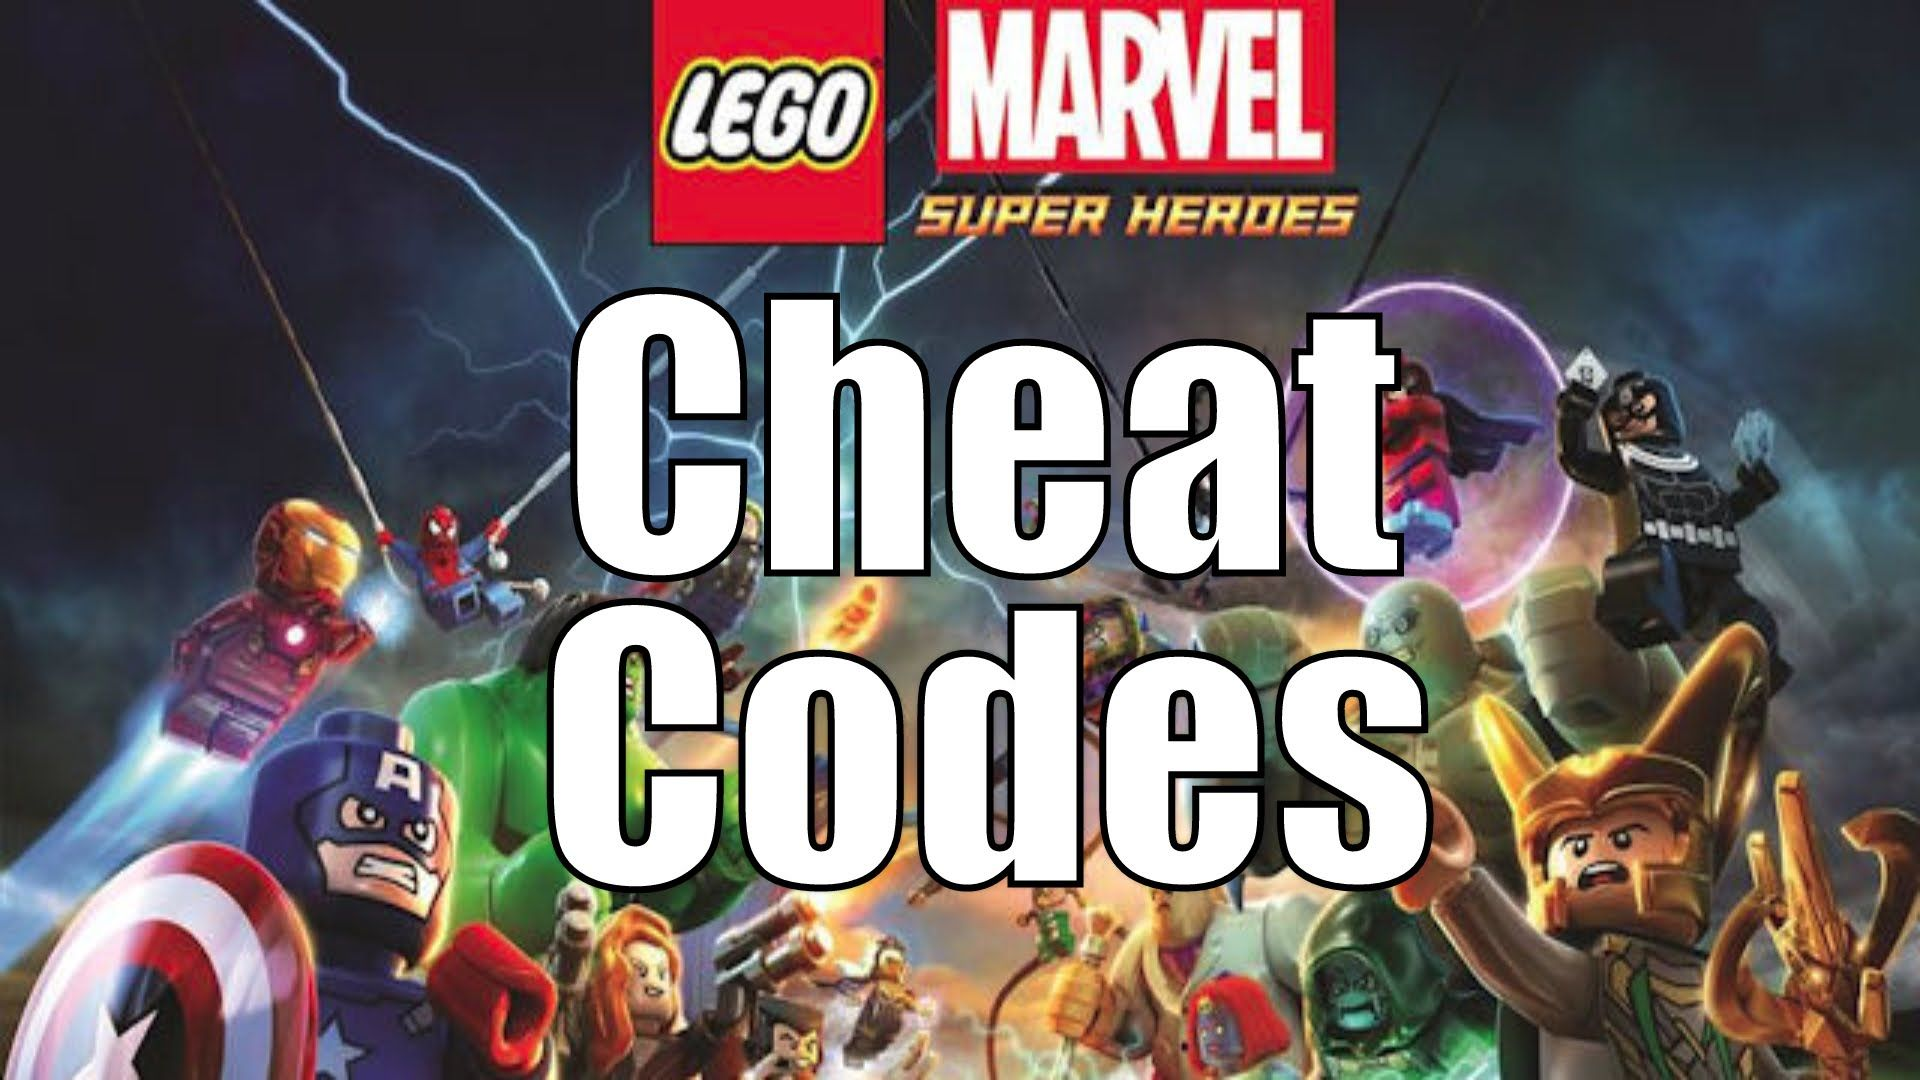 Lego Marvel Super Heroes Cheat Codes Lego Marvel Super Heroes Lego Marvel Marvel Superheroes